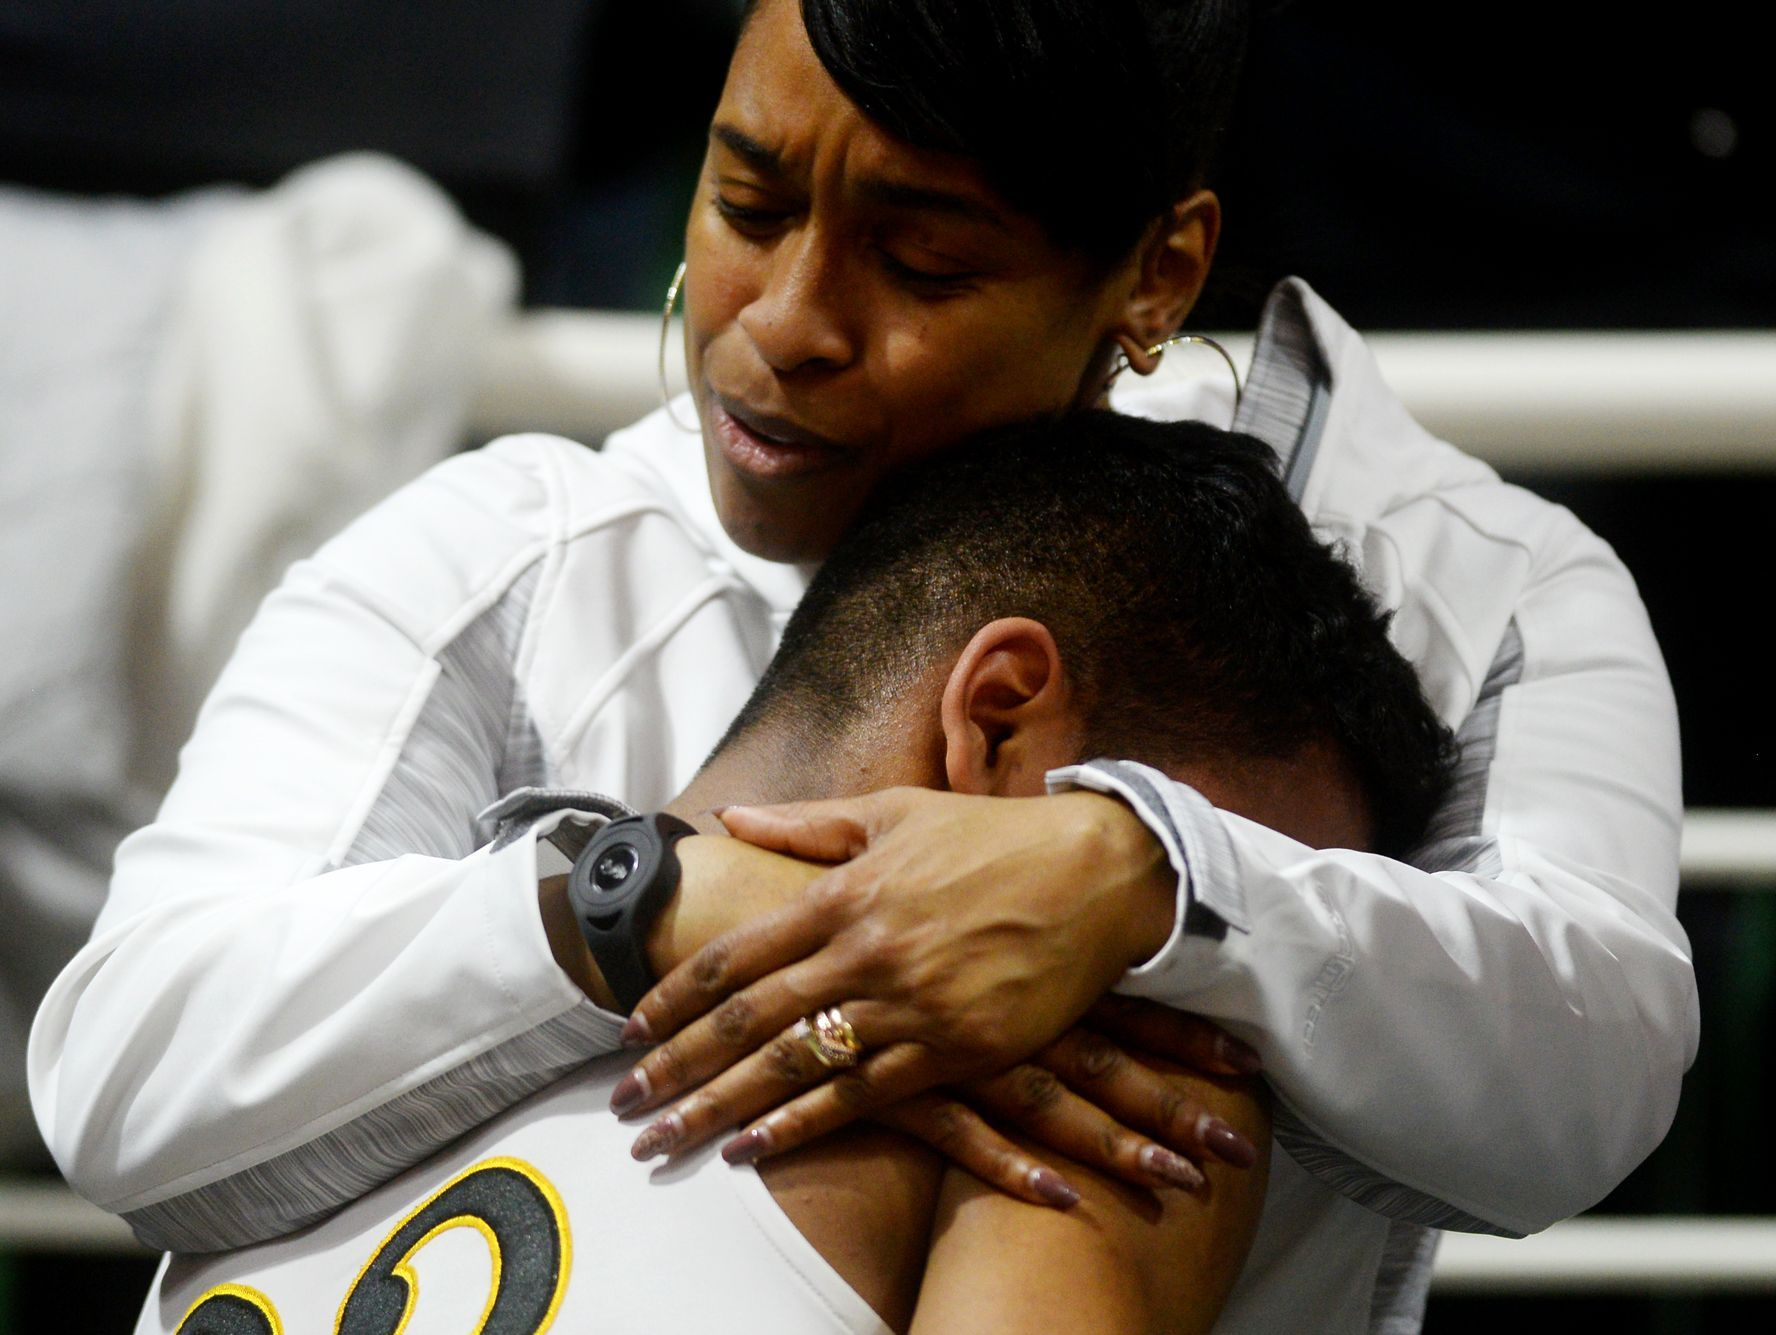 Lansing Christian's Forrest Bouyer is comforted after the team's loss in the Class D state semifinals against Buckley on Thursday, March 23, 2017 at the Breslin Center in East Lansing. Buckley won, 68-61.